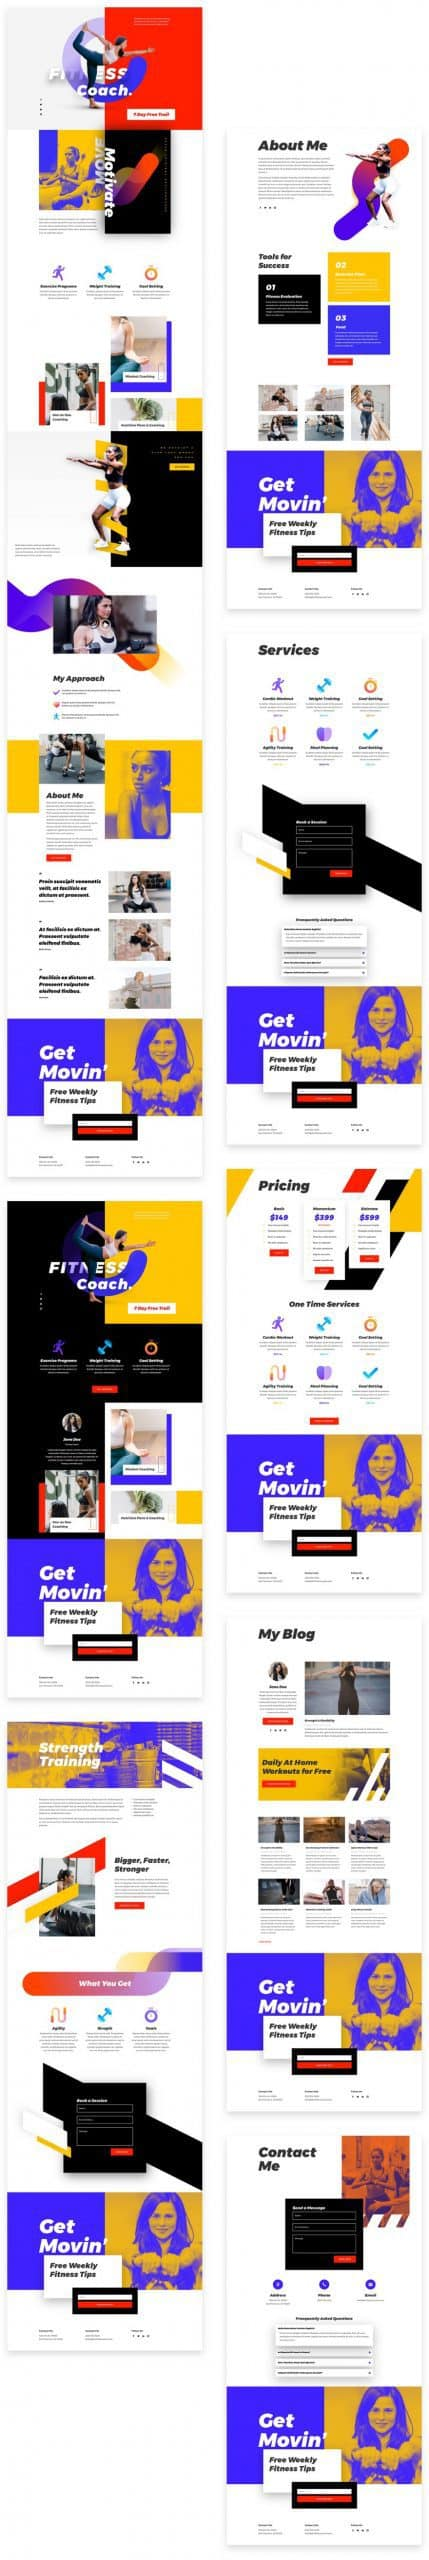 Fitness Coach Layout Pack